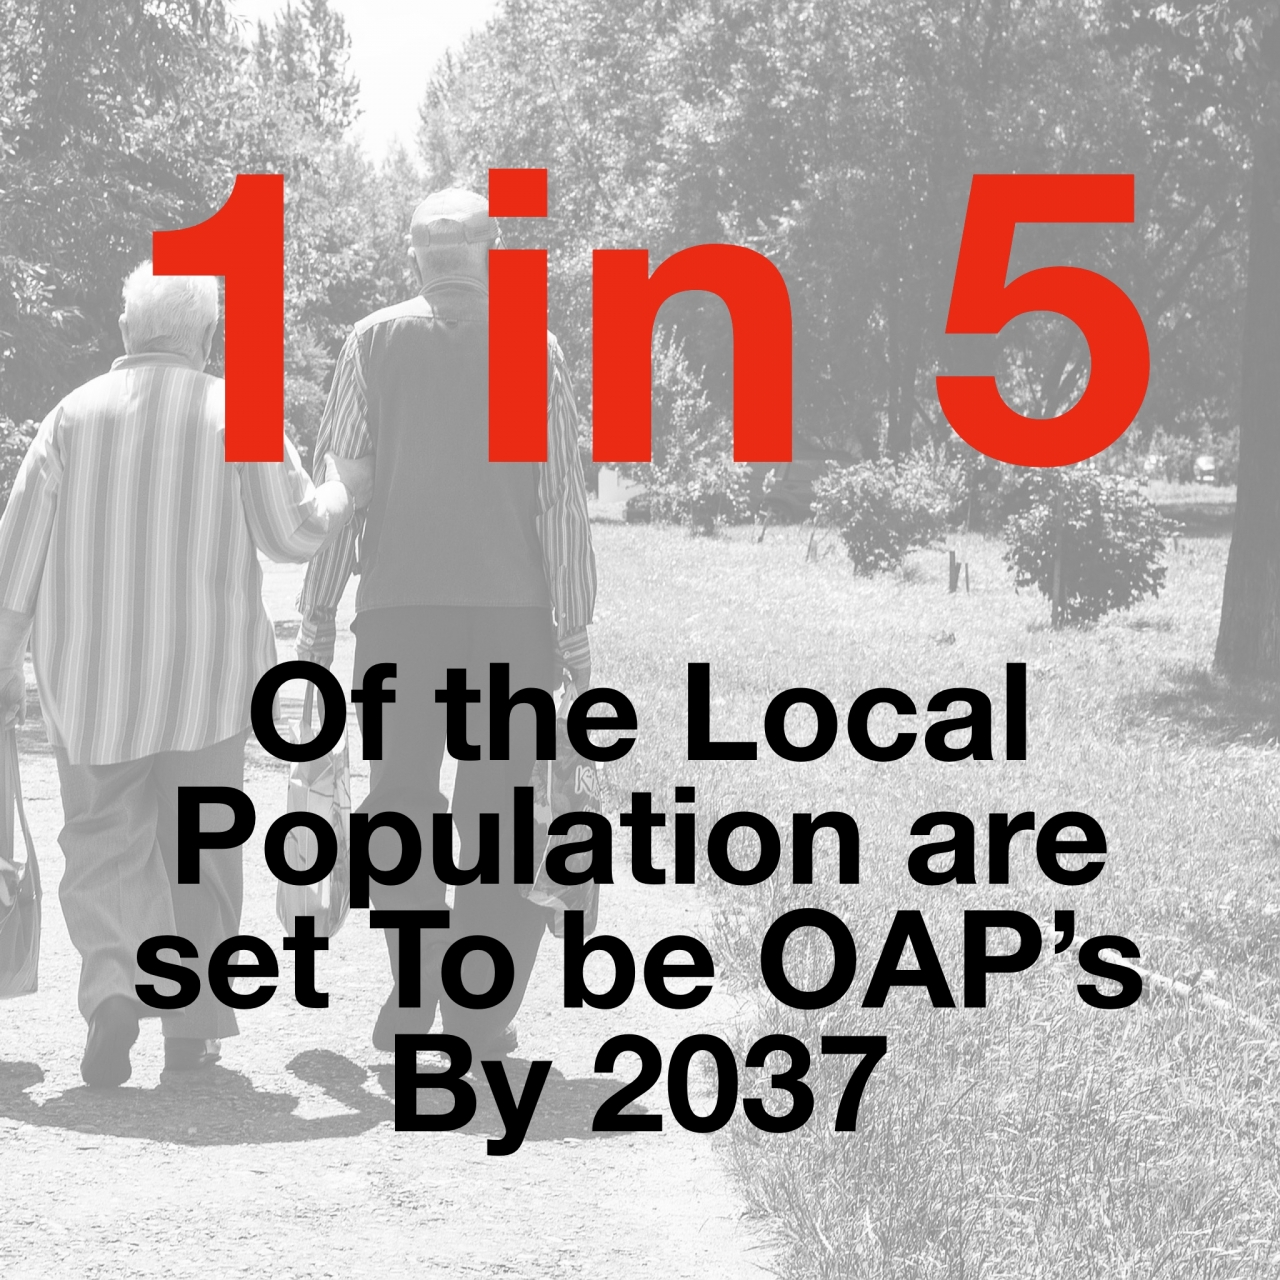 >As OAP's set to rise to 1...